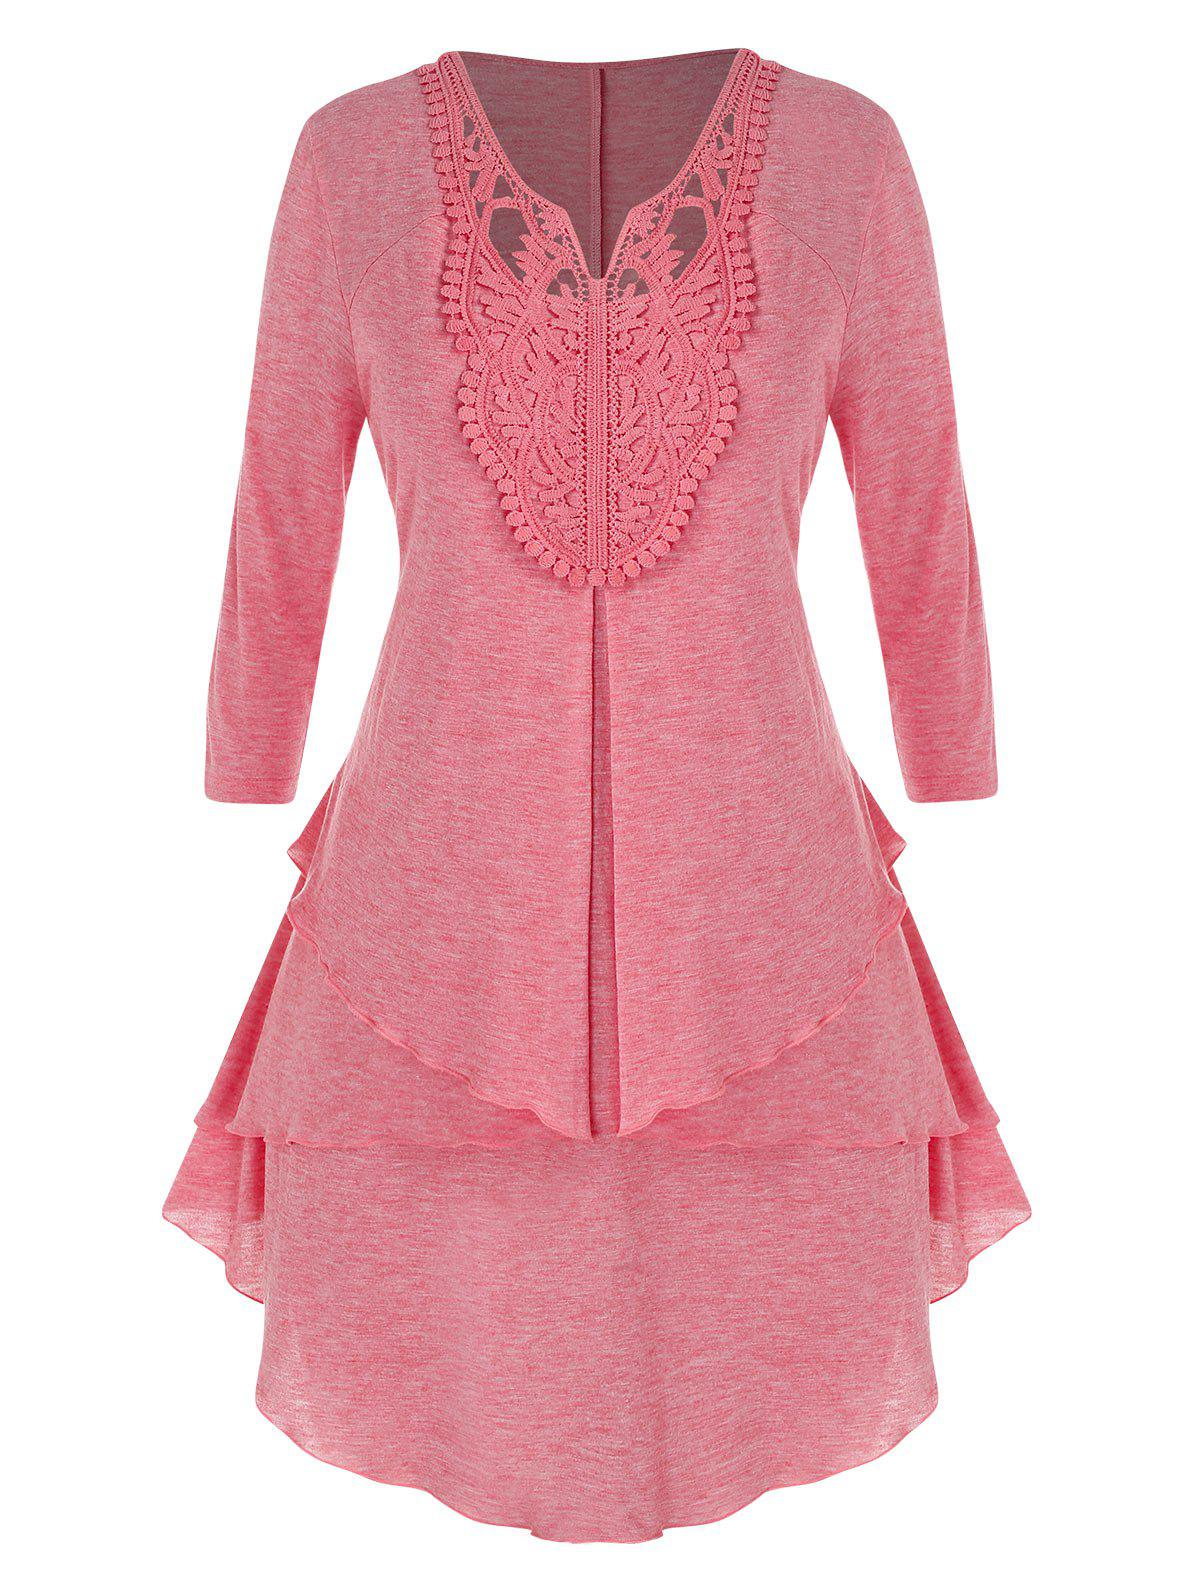 Plus Size Hollow Out Lace Tiered Tunic Top - LIGHT PINK 5X